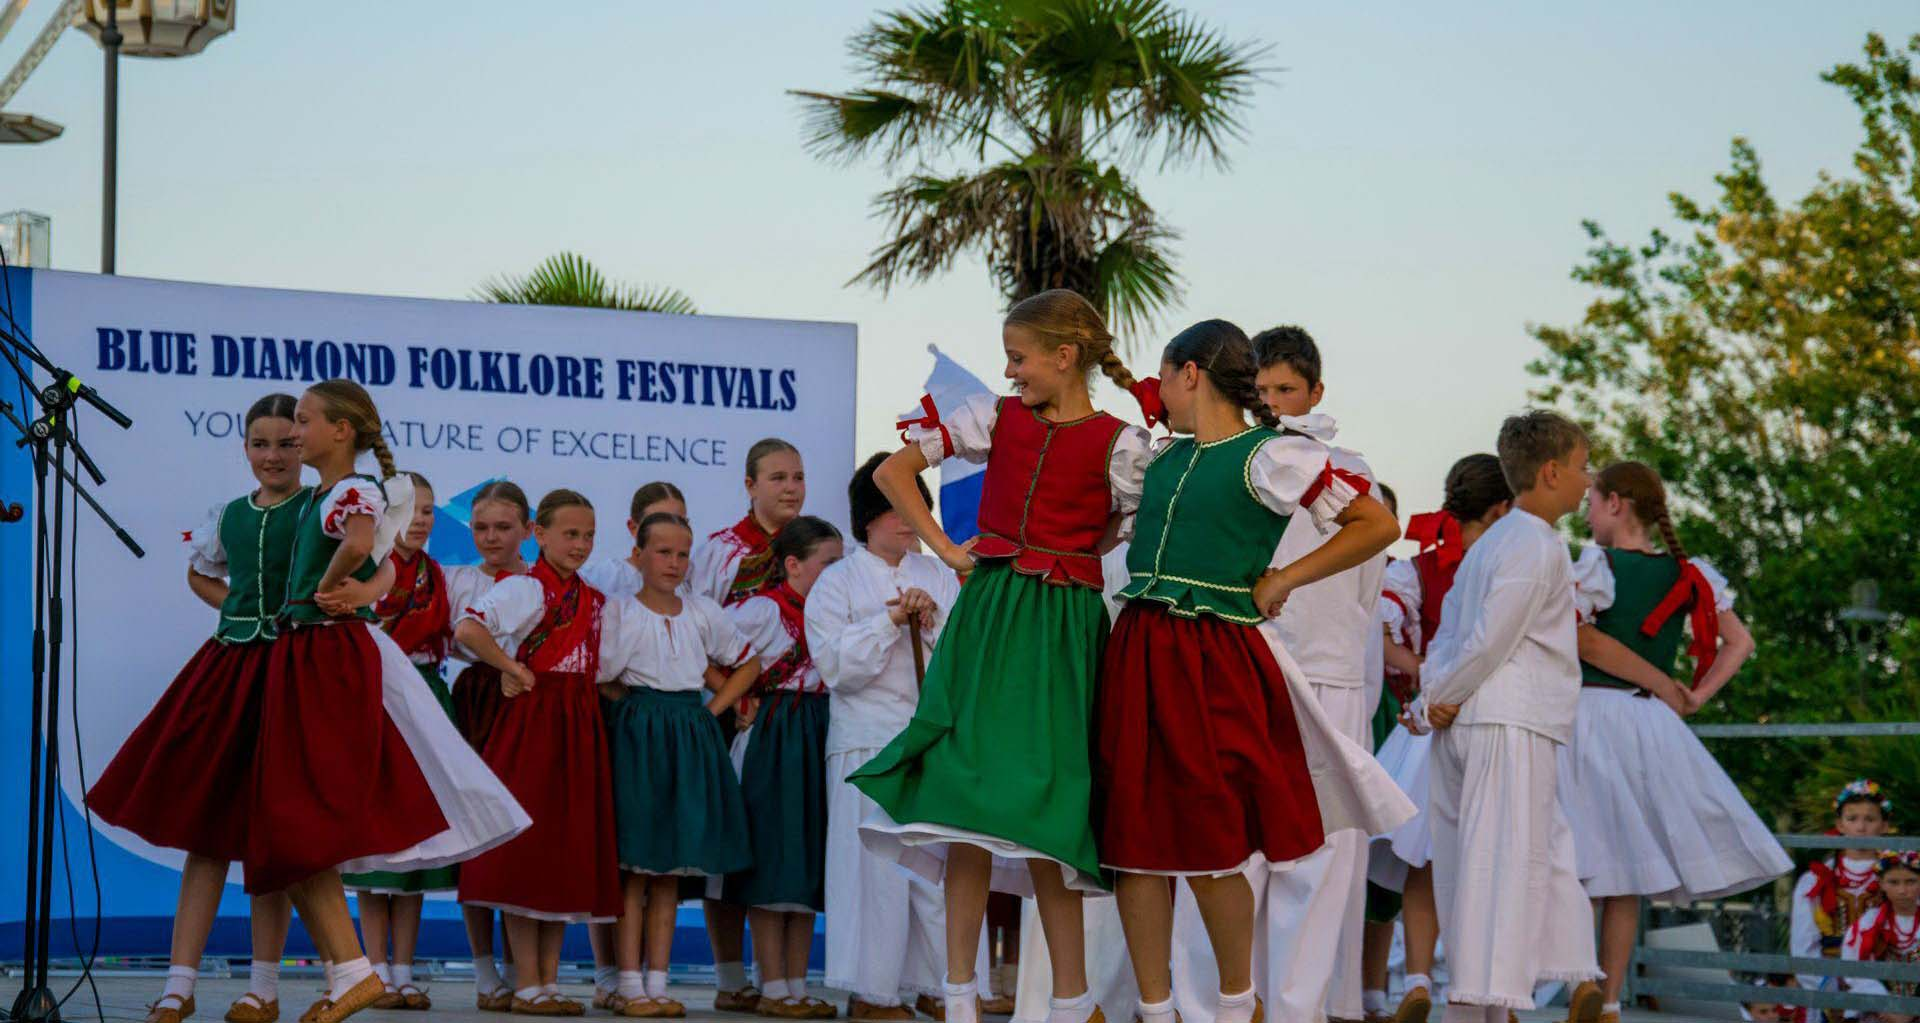 CONTACTO - Folklore festivals Blue Diamond